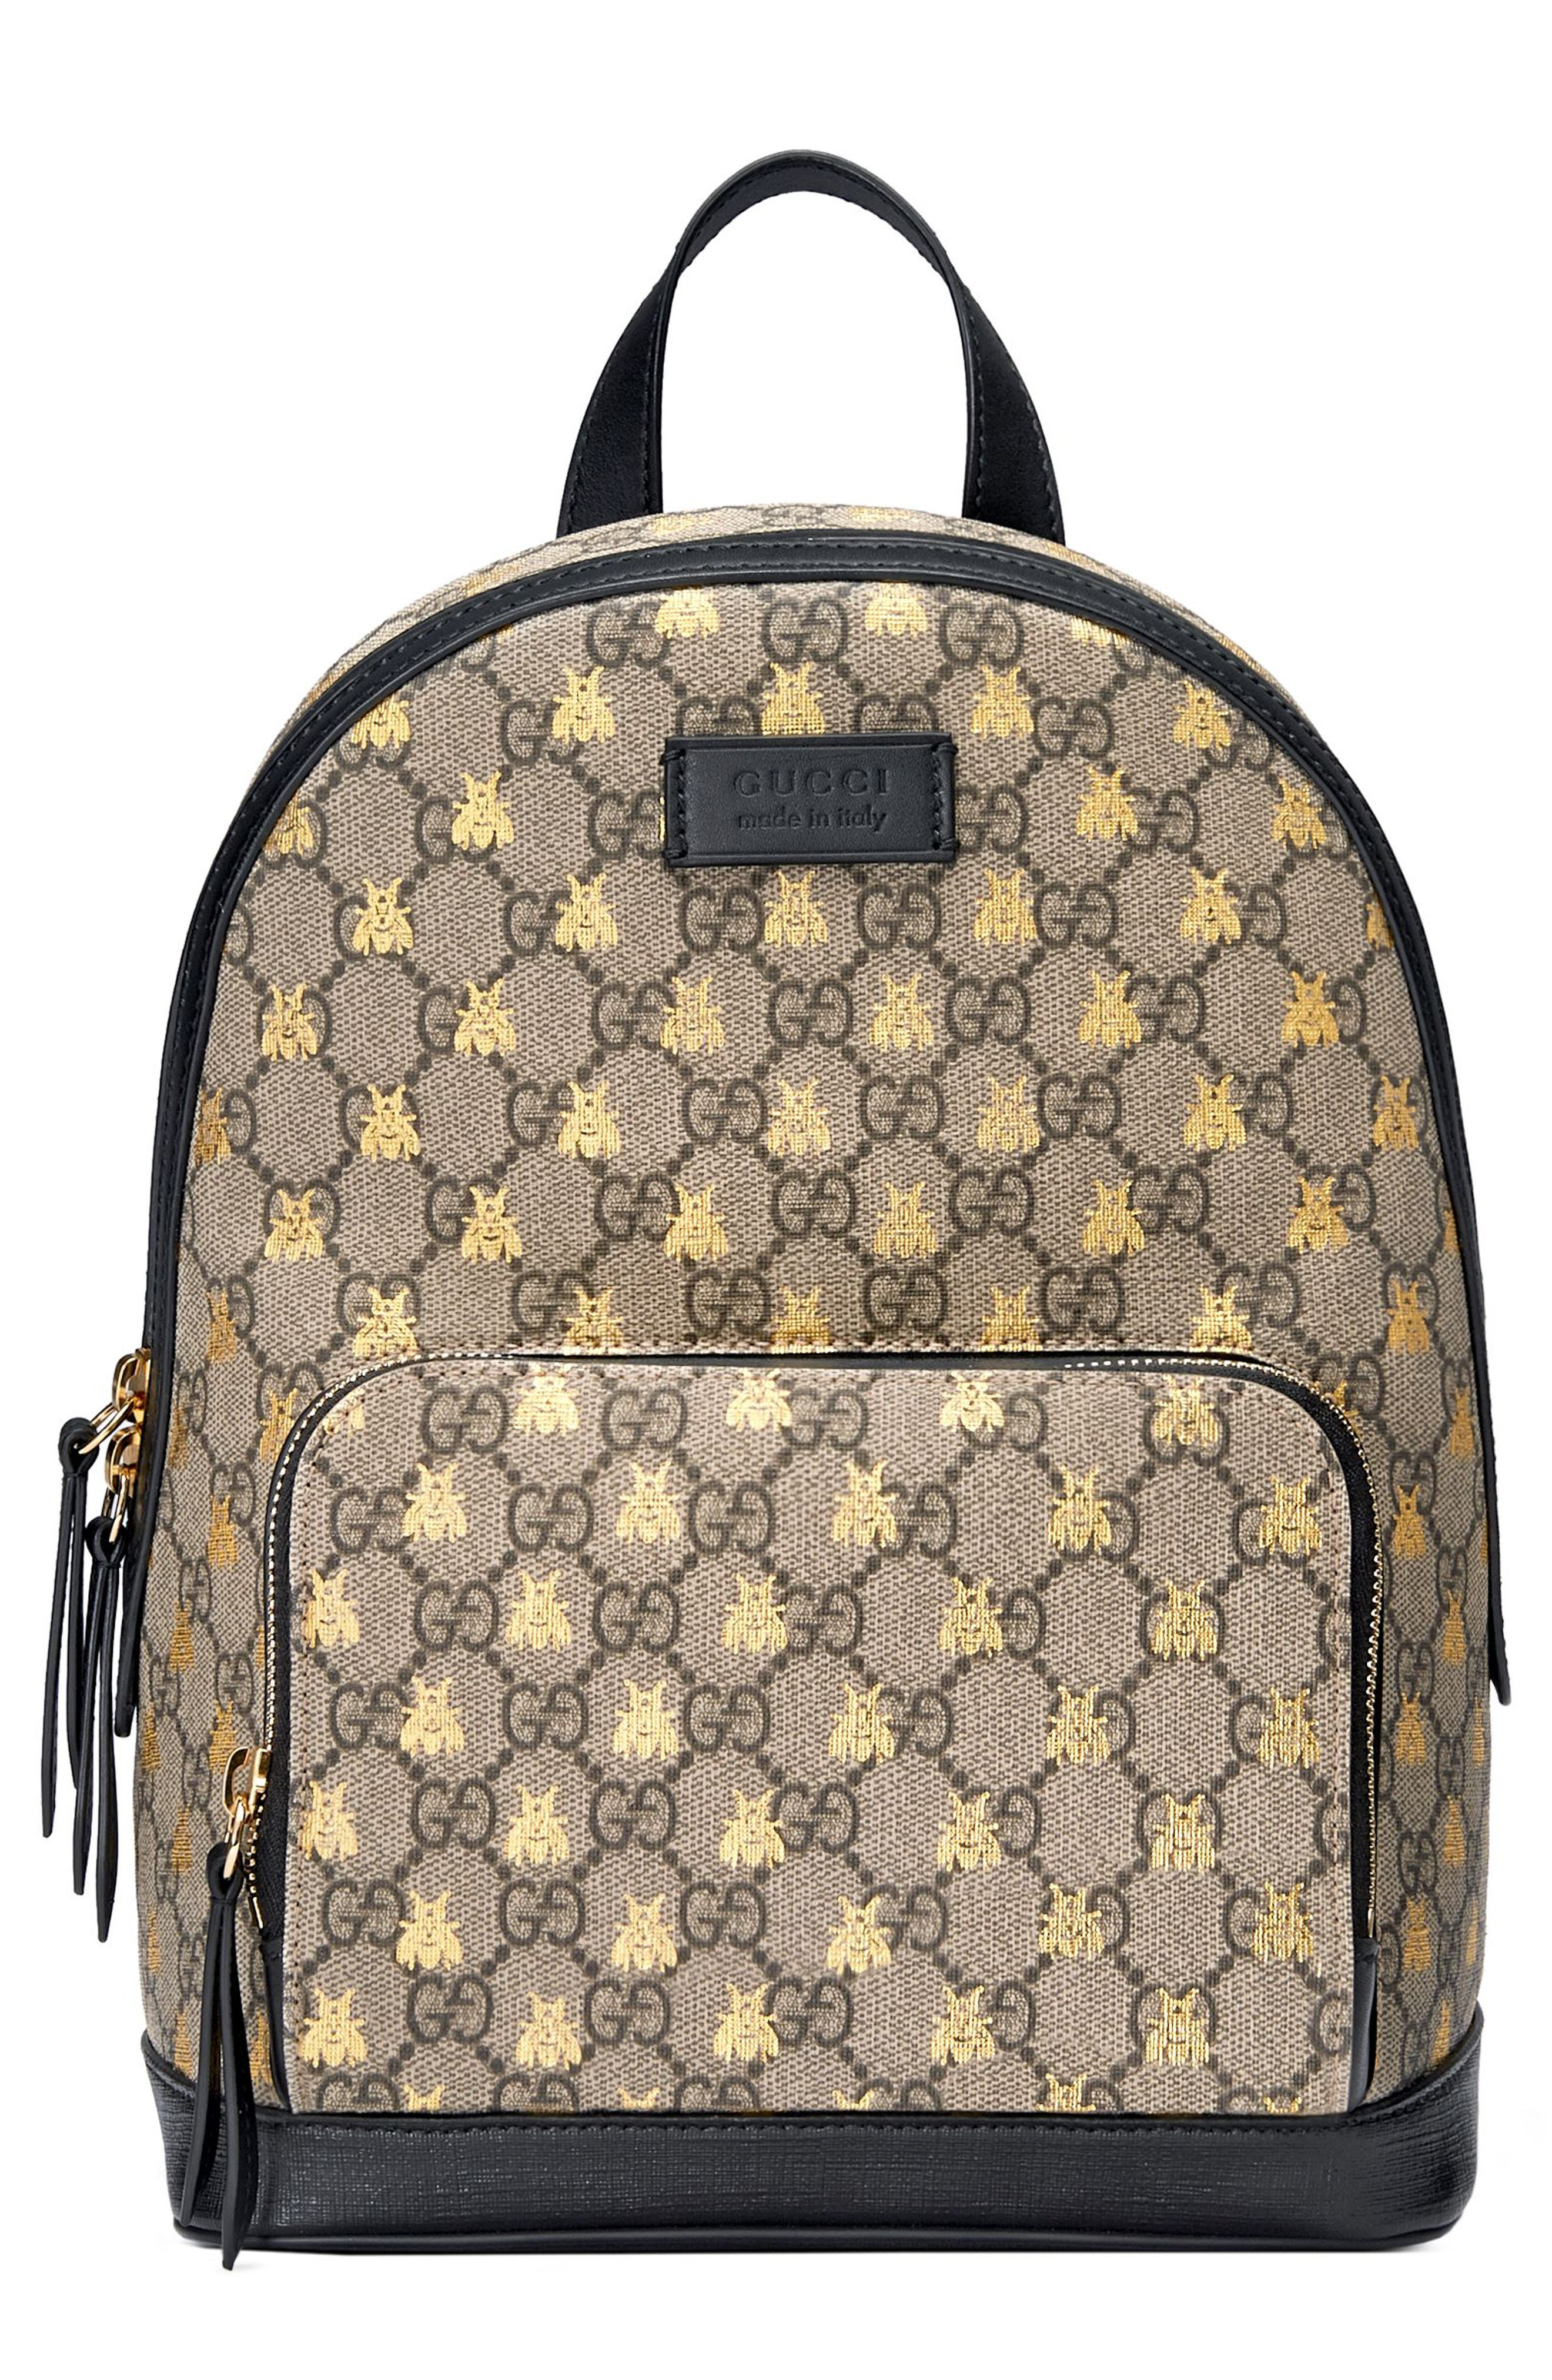 GUCCI Bee GG Supreme Canvas Backpack, Main, color, 250